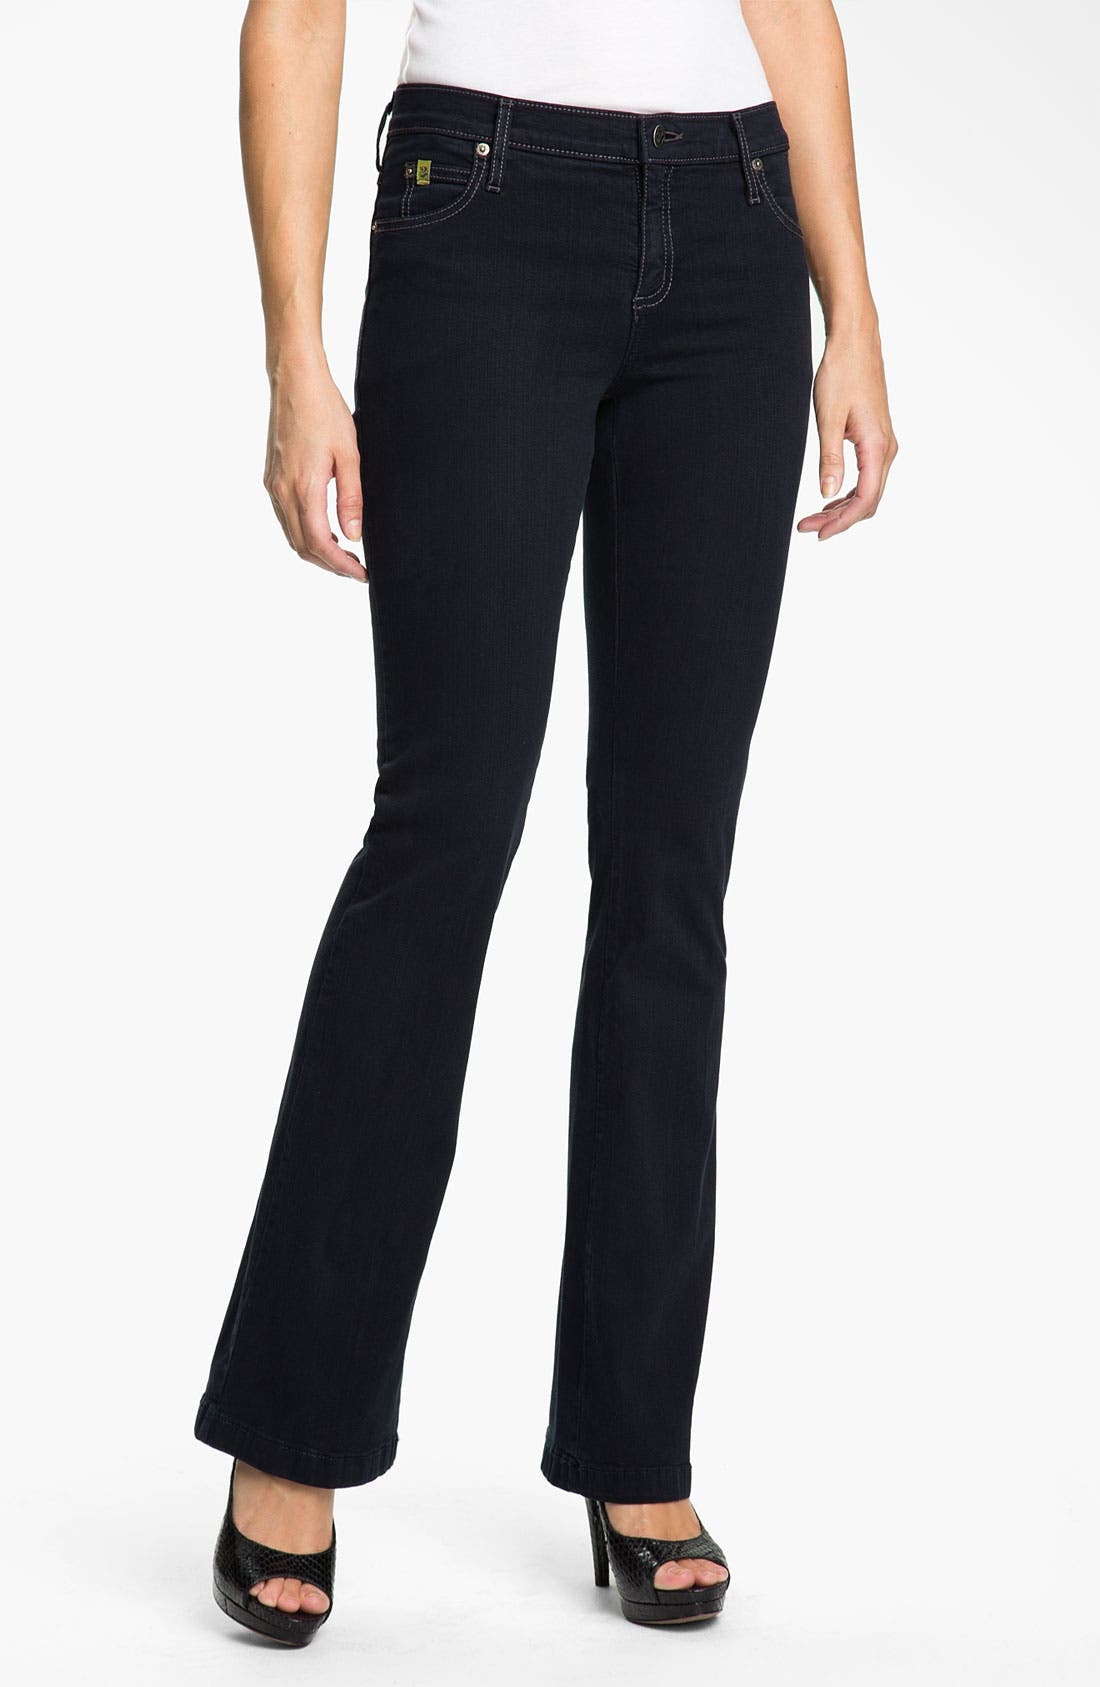 Alternate Image 1 Selected - Yoga Jeans by Second Denim Bootcut Jeans